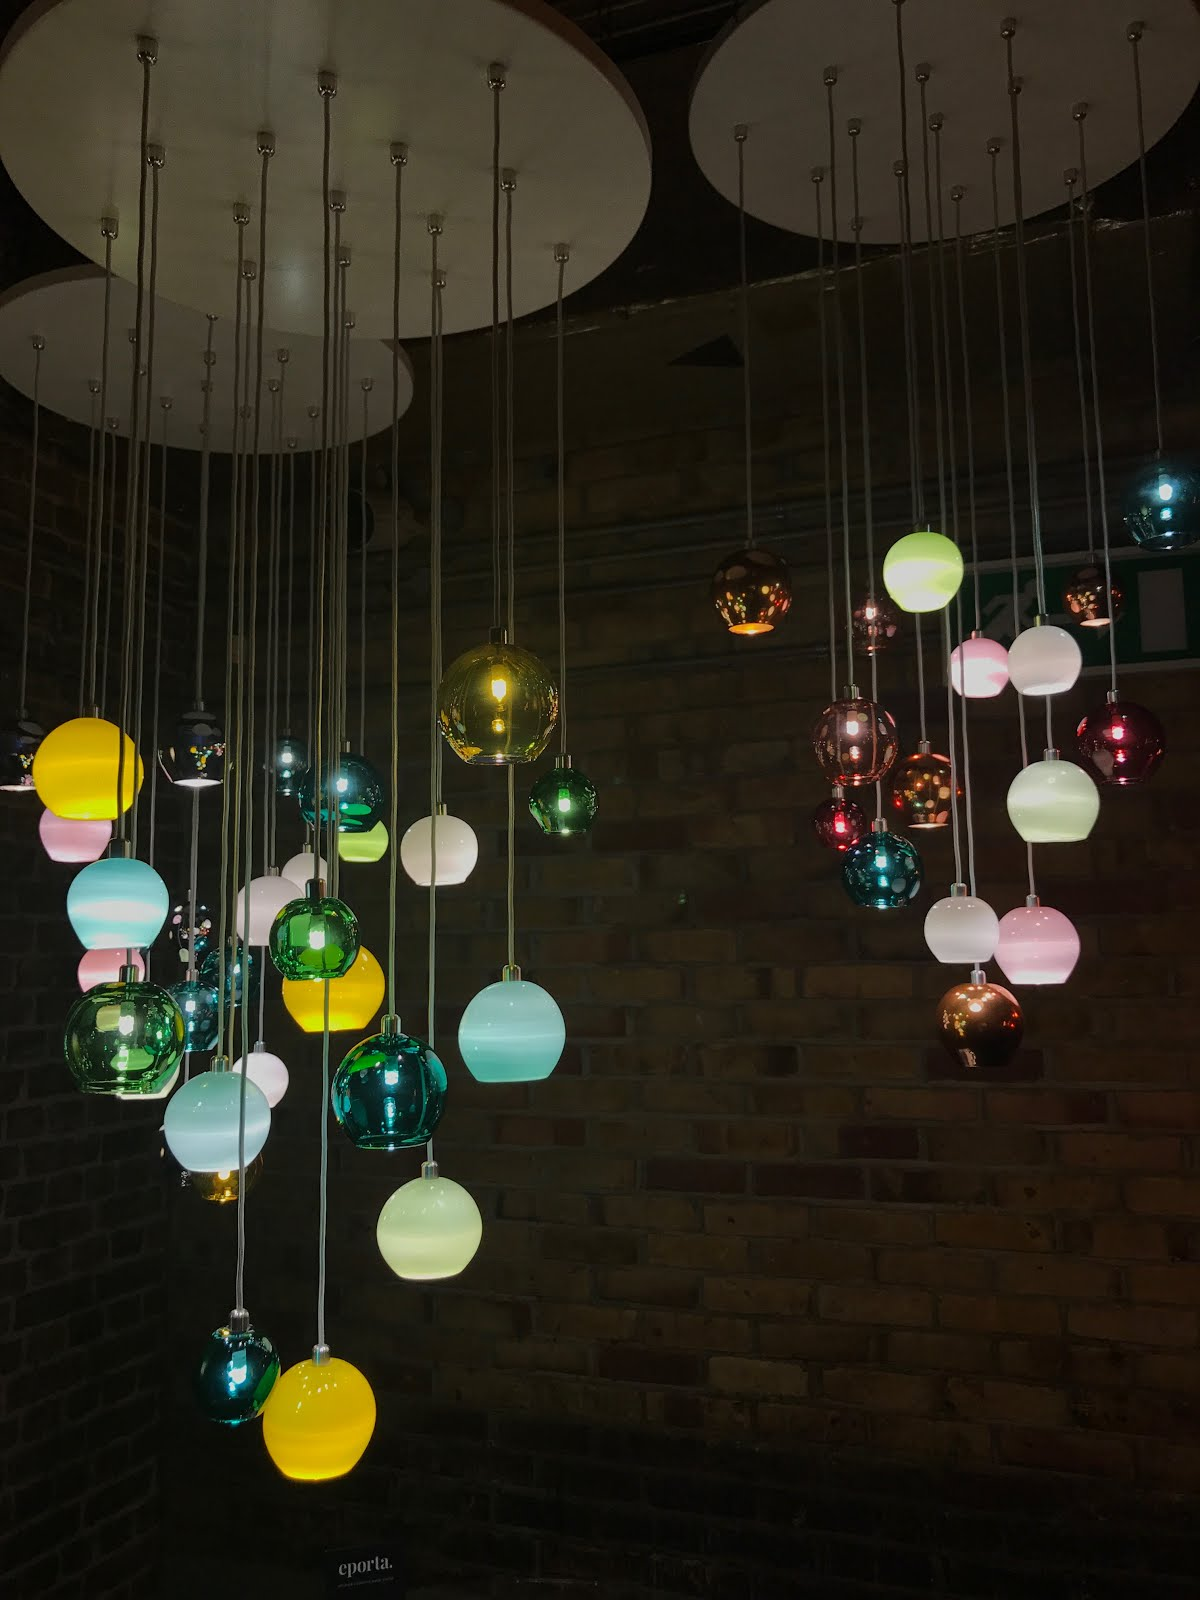 Curiousa & Curiousa, new product launch, hand blown glass uk, colourful lighting